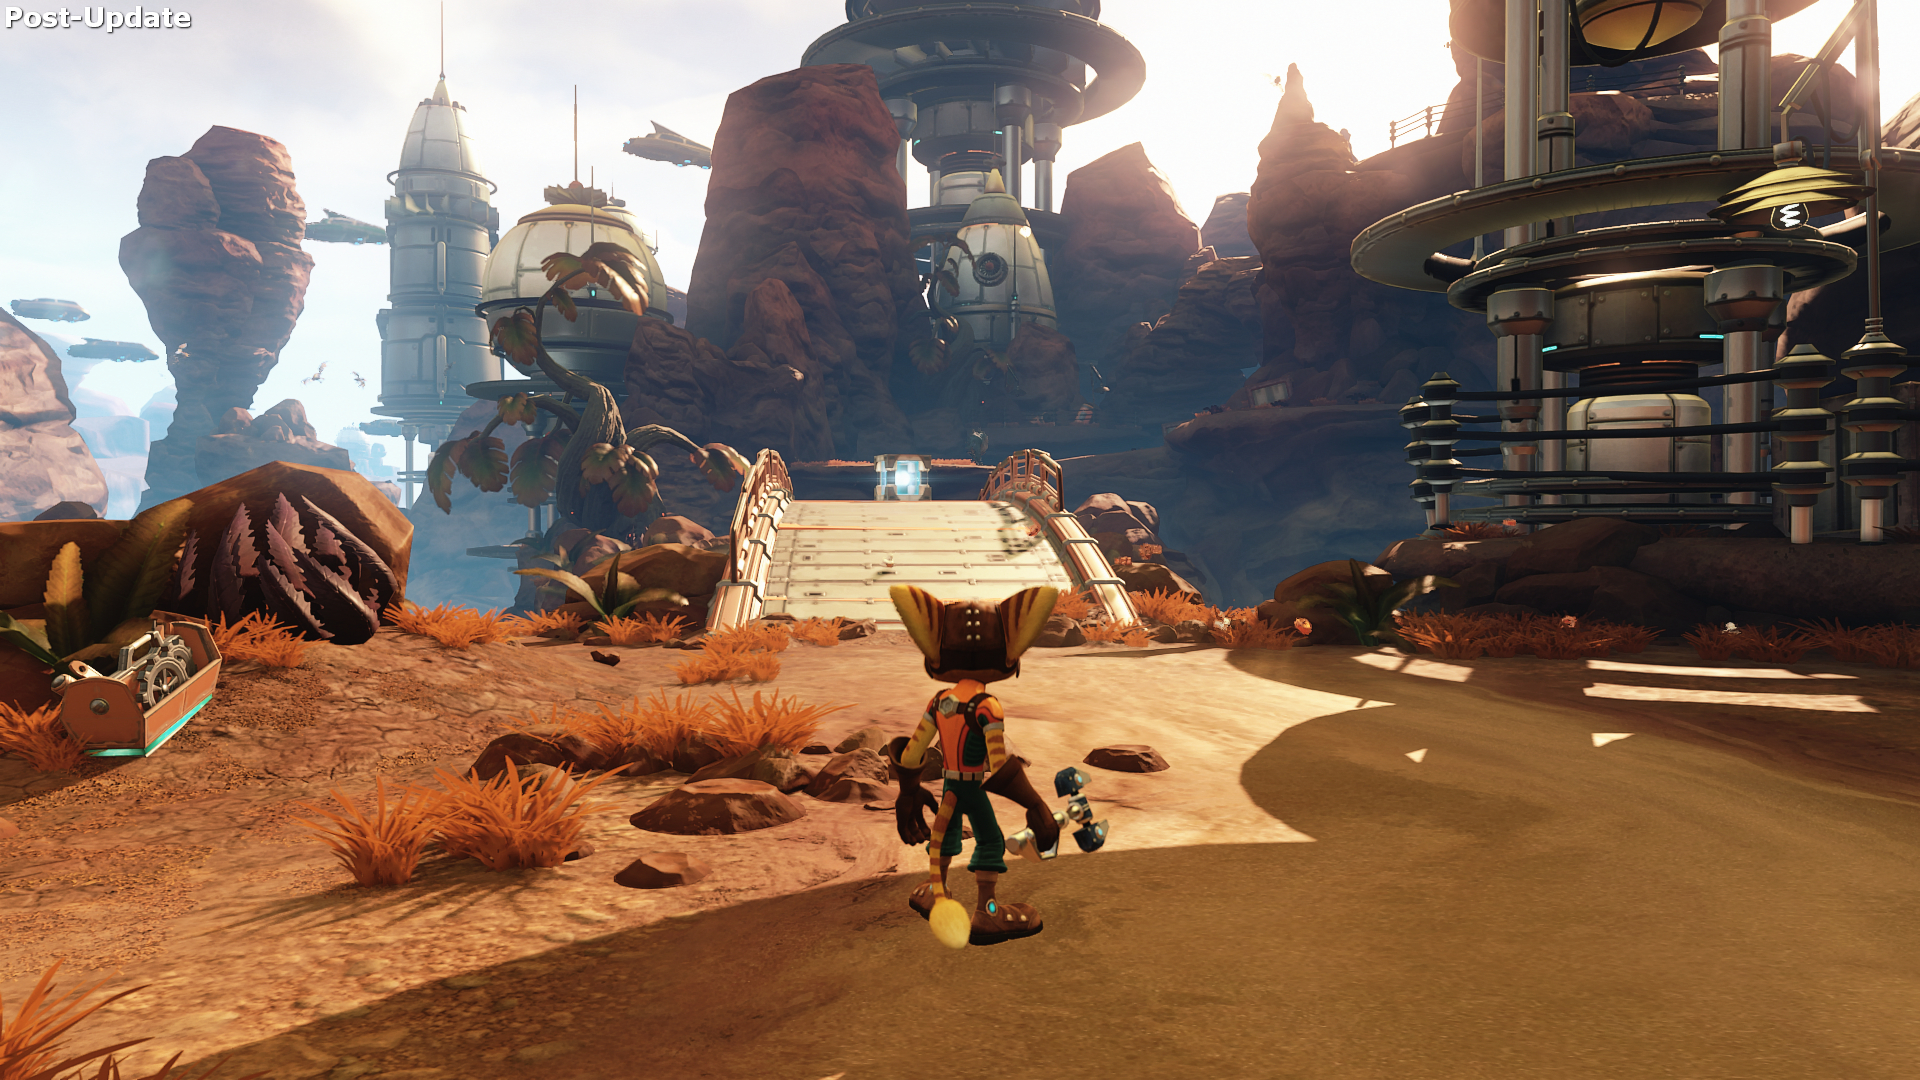 Ratchet and clank ps4 cheats